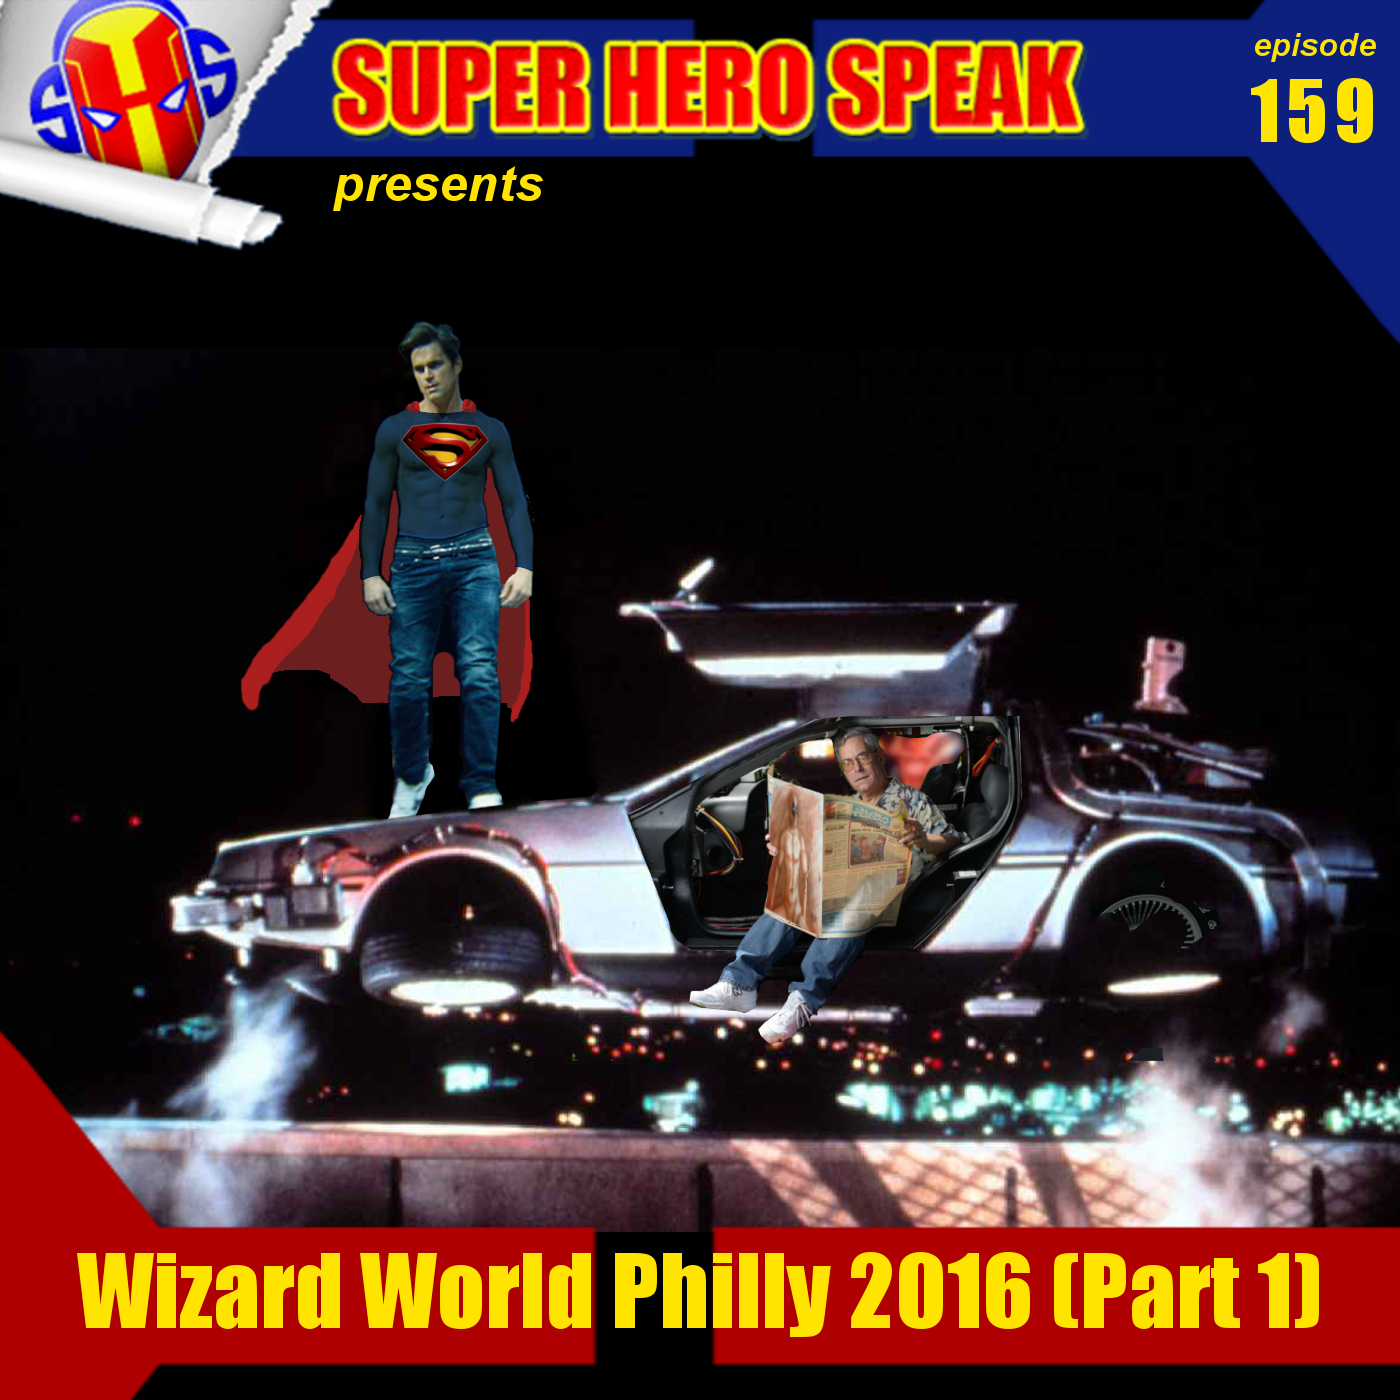 #159: Wizard World Philly 2016 Part 1